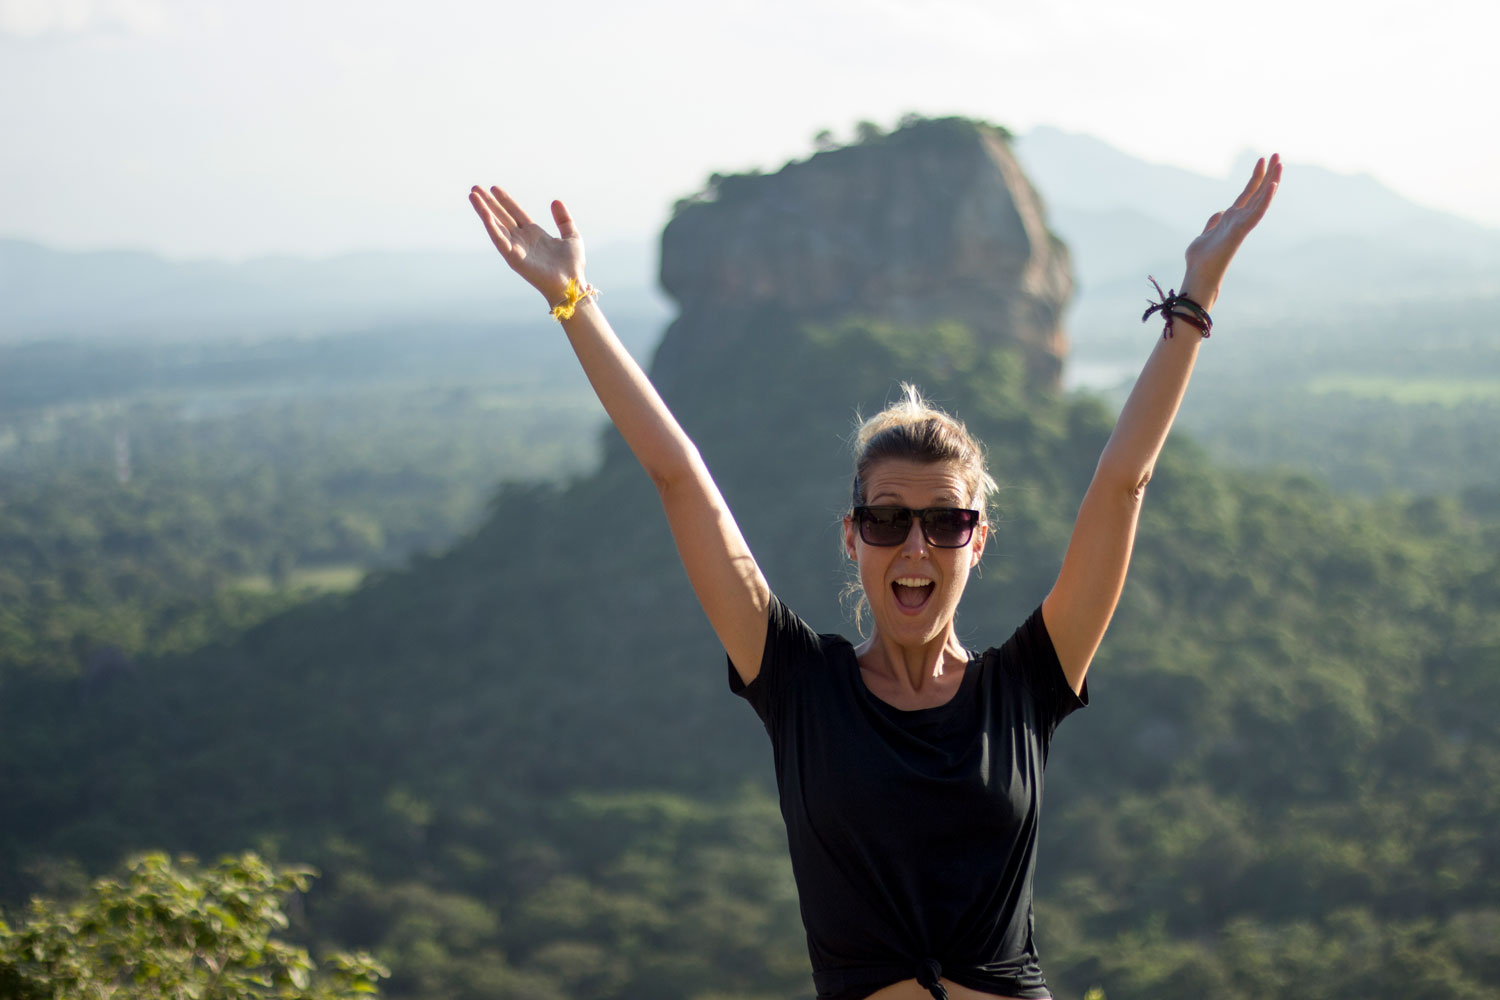 Anne celebrates reaching the top of Pidurangala Rock in Sri Lanka, with Sigiriya in the background.